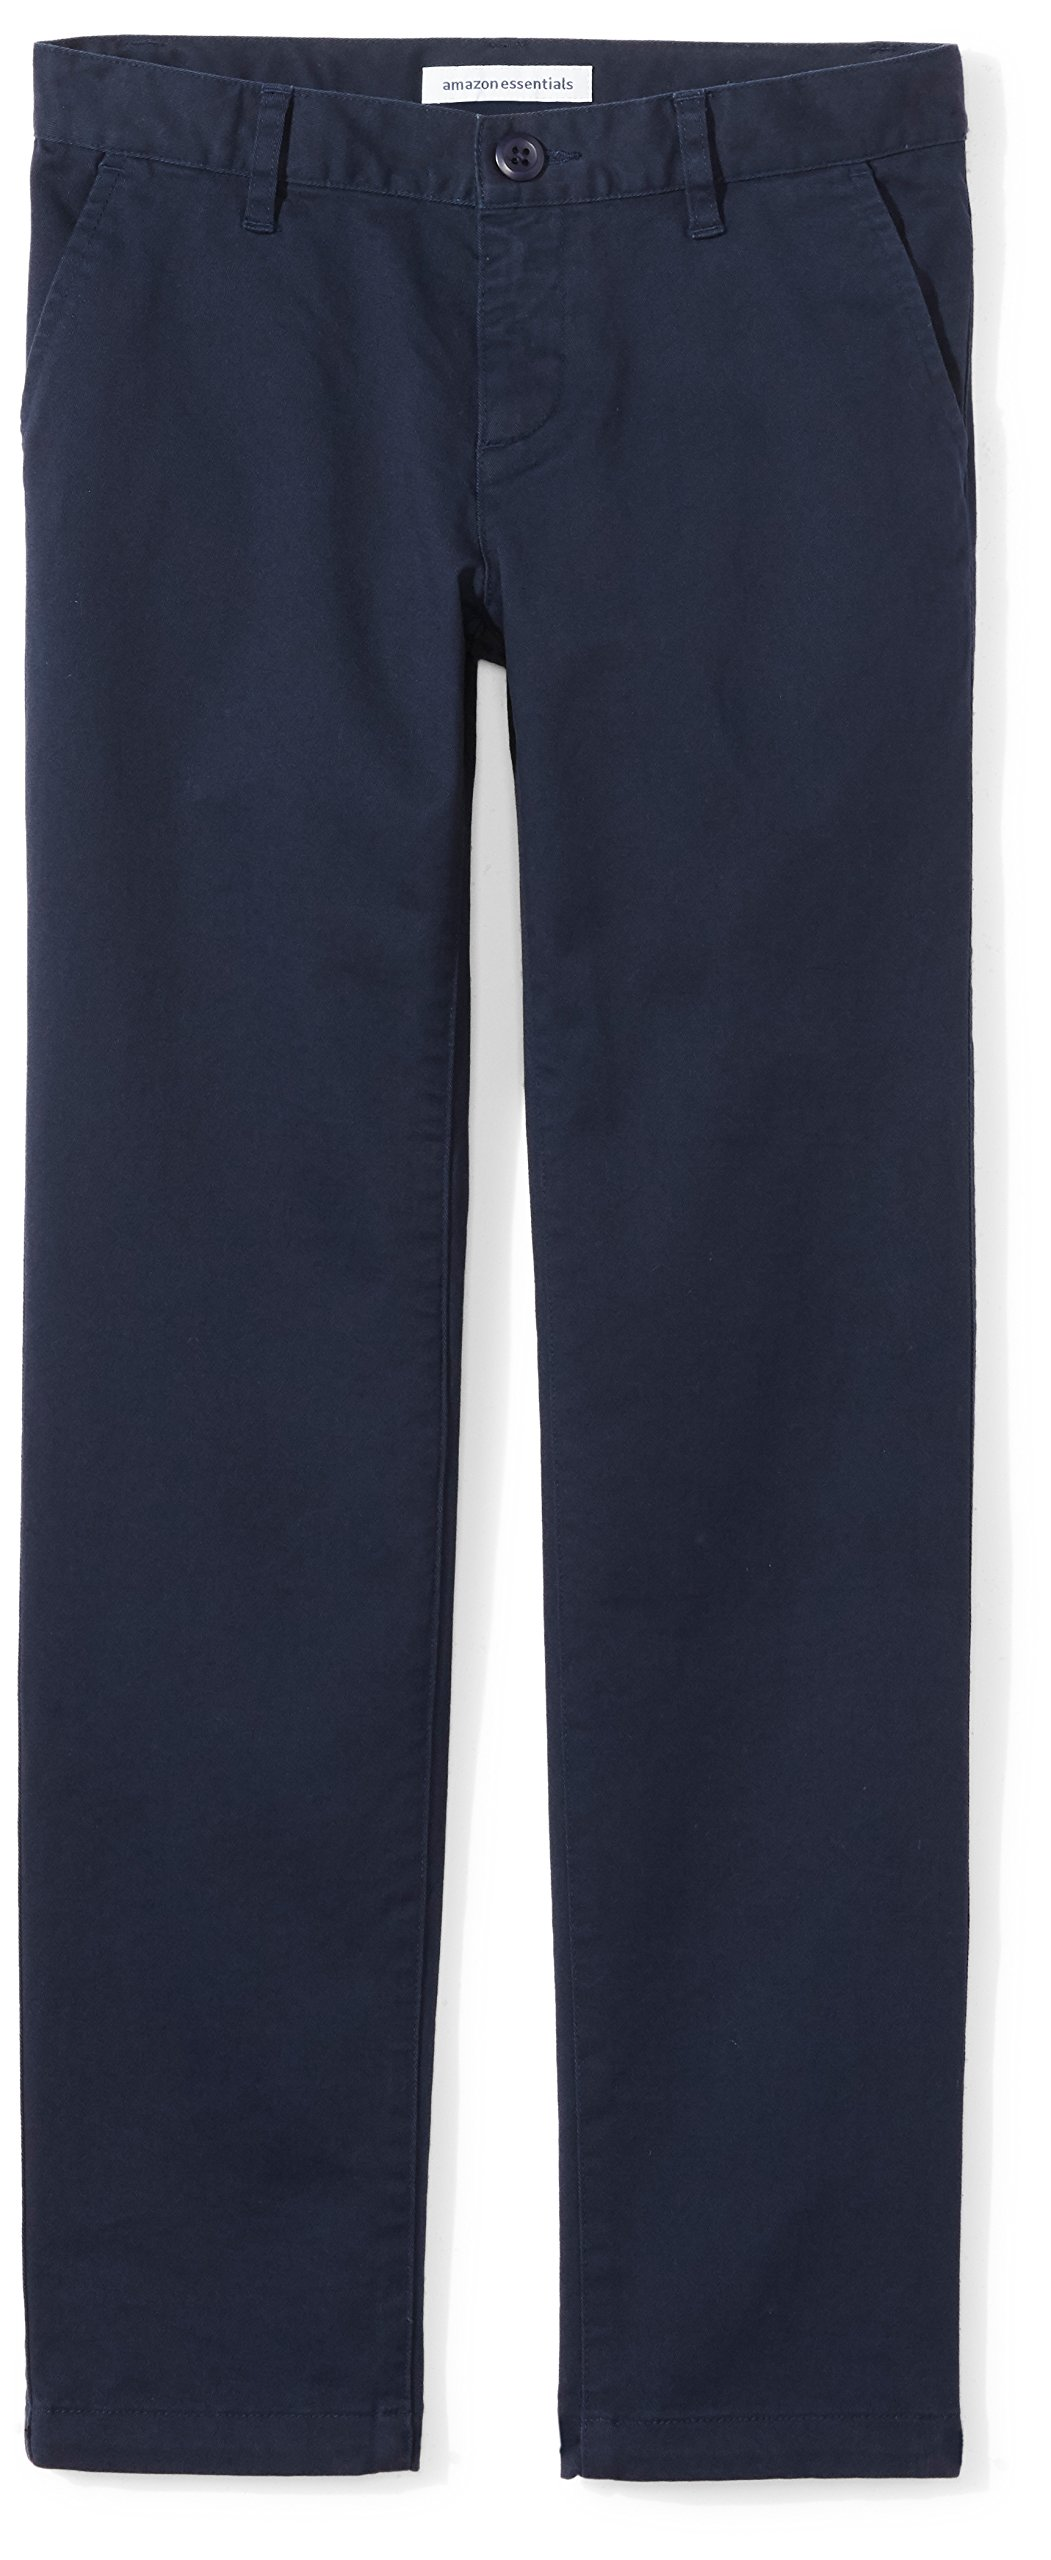 Amazon Essentials Girls' Flat Front Uniform Chino Pant, Navy,6